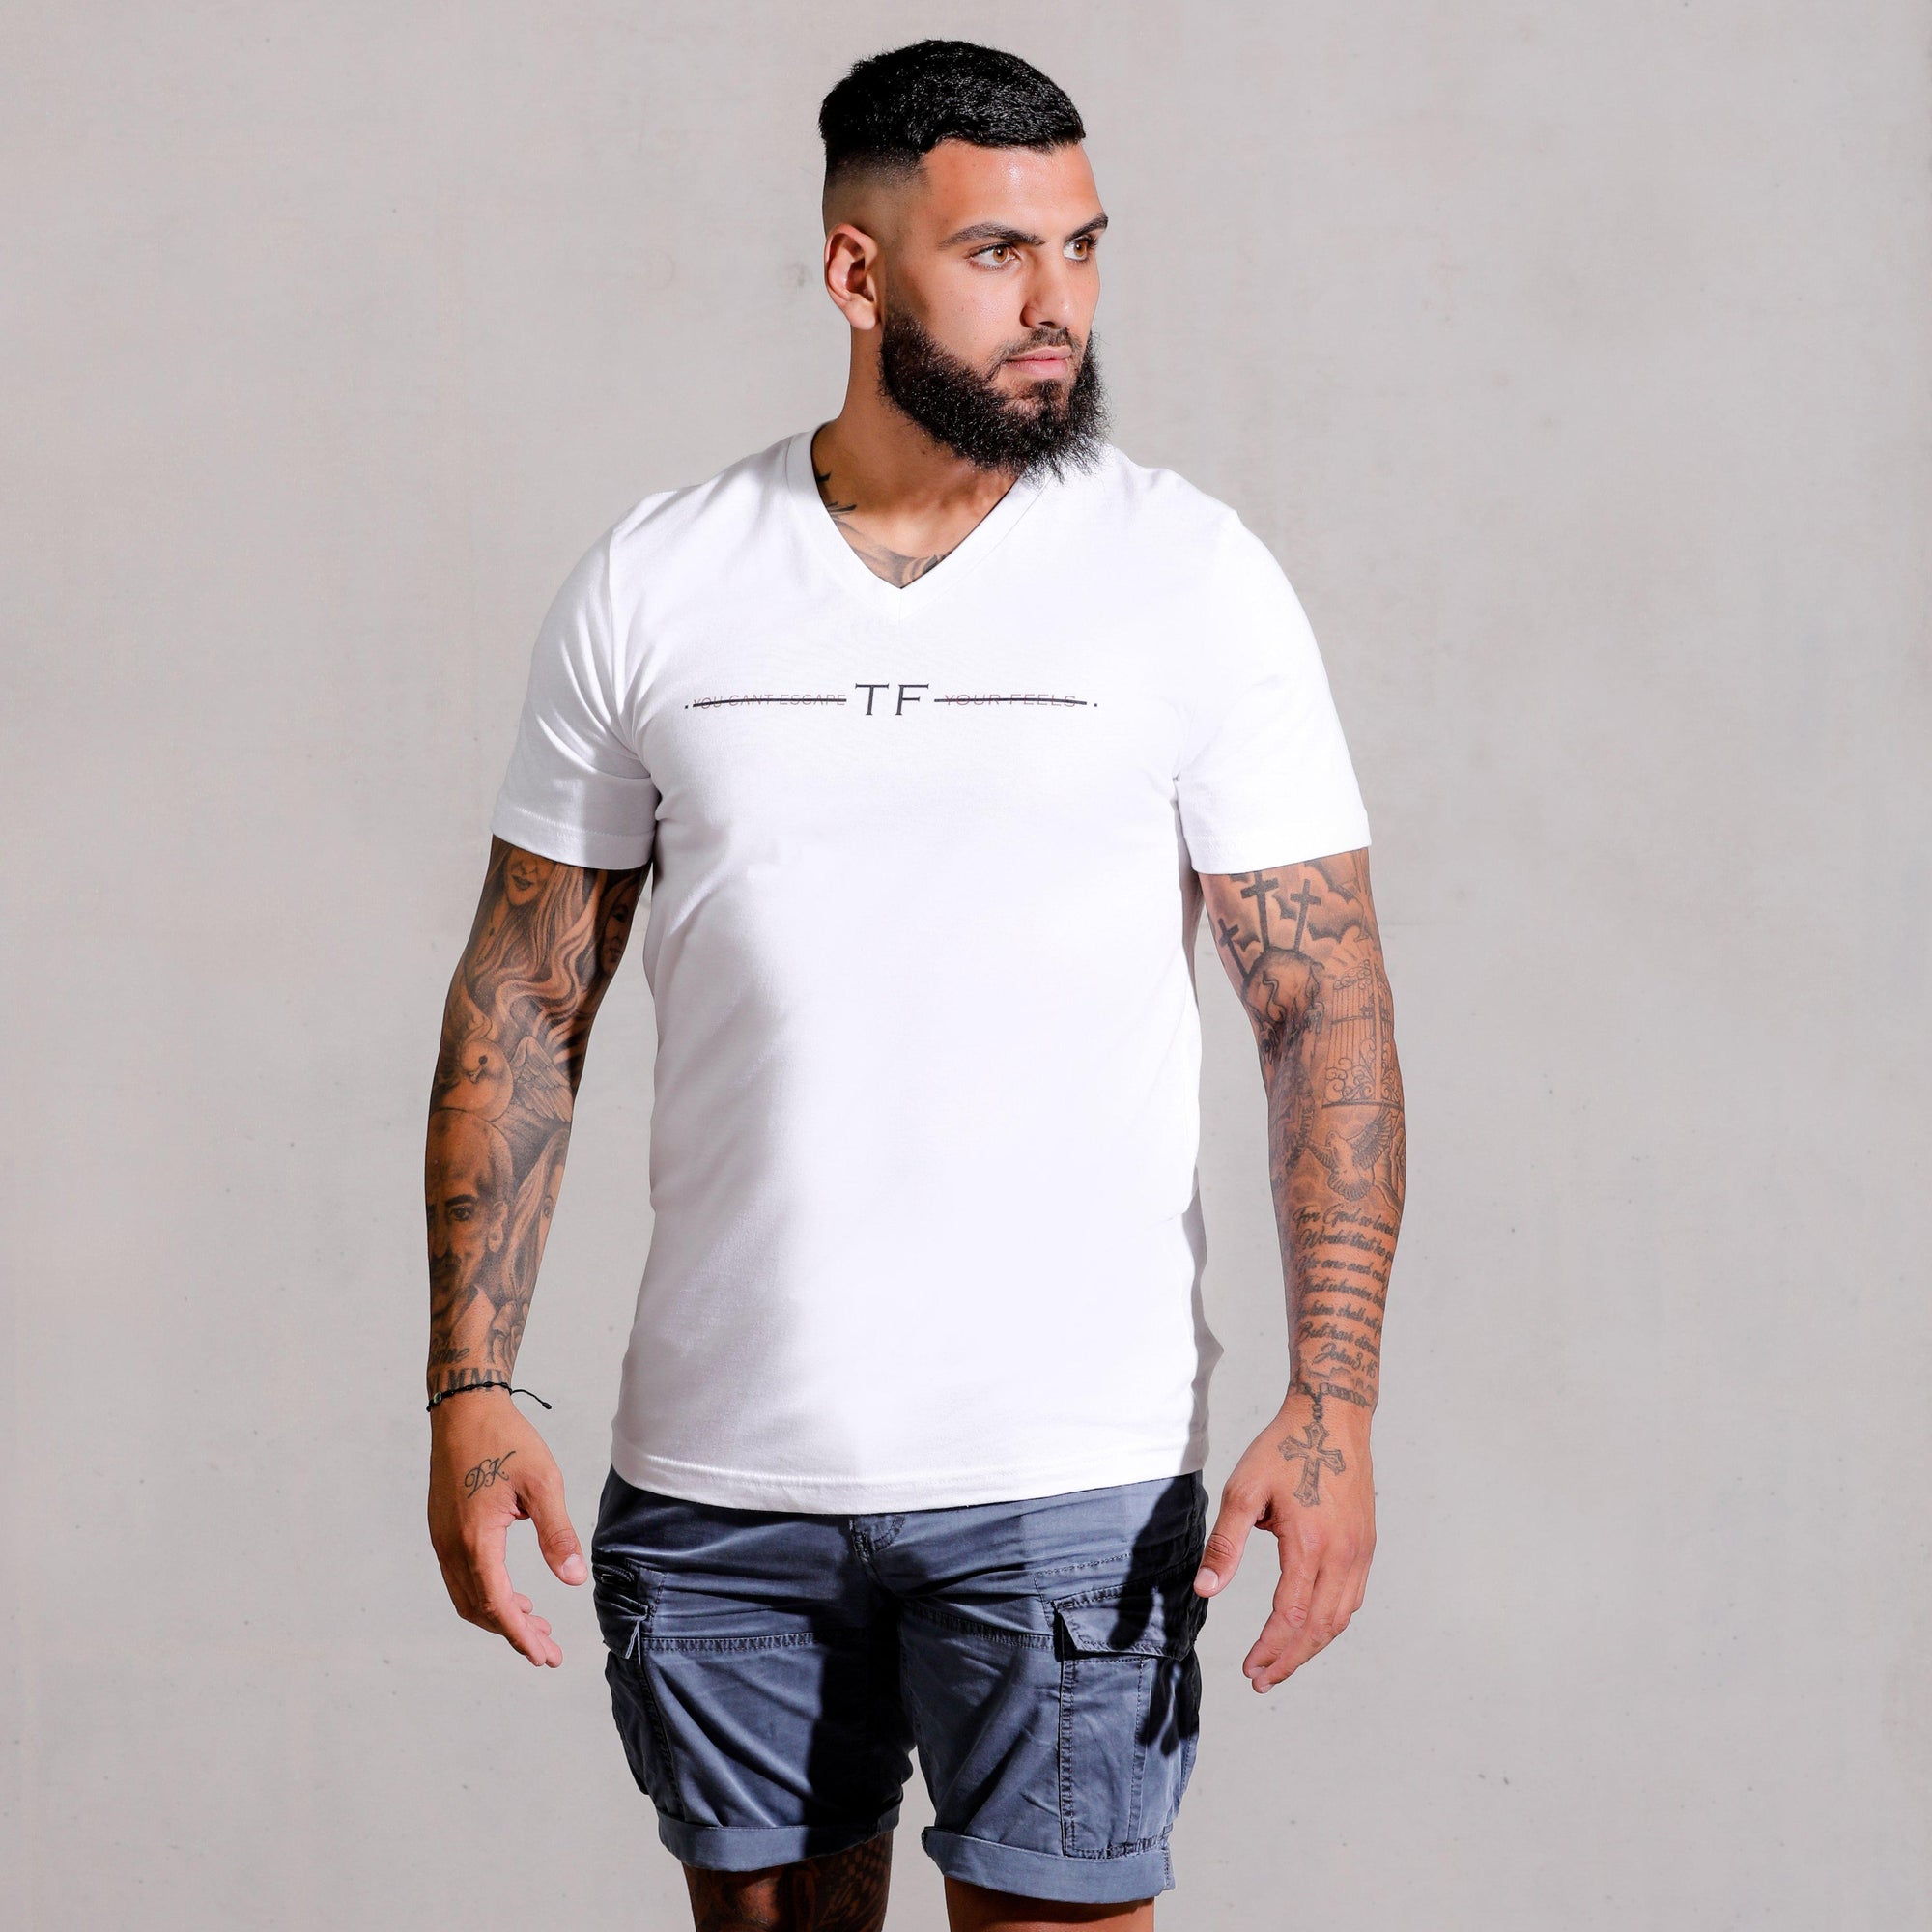 Muscle hunk with tattoos and beard modelling wearing White V Neck Signature Escape T-shirt and jeans for a causal look. Printed on the chest is the feels apparel signature slogan.